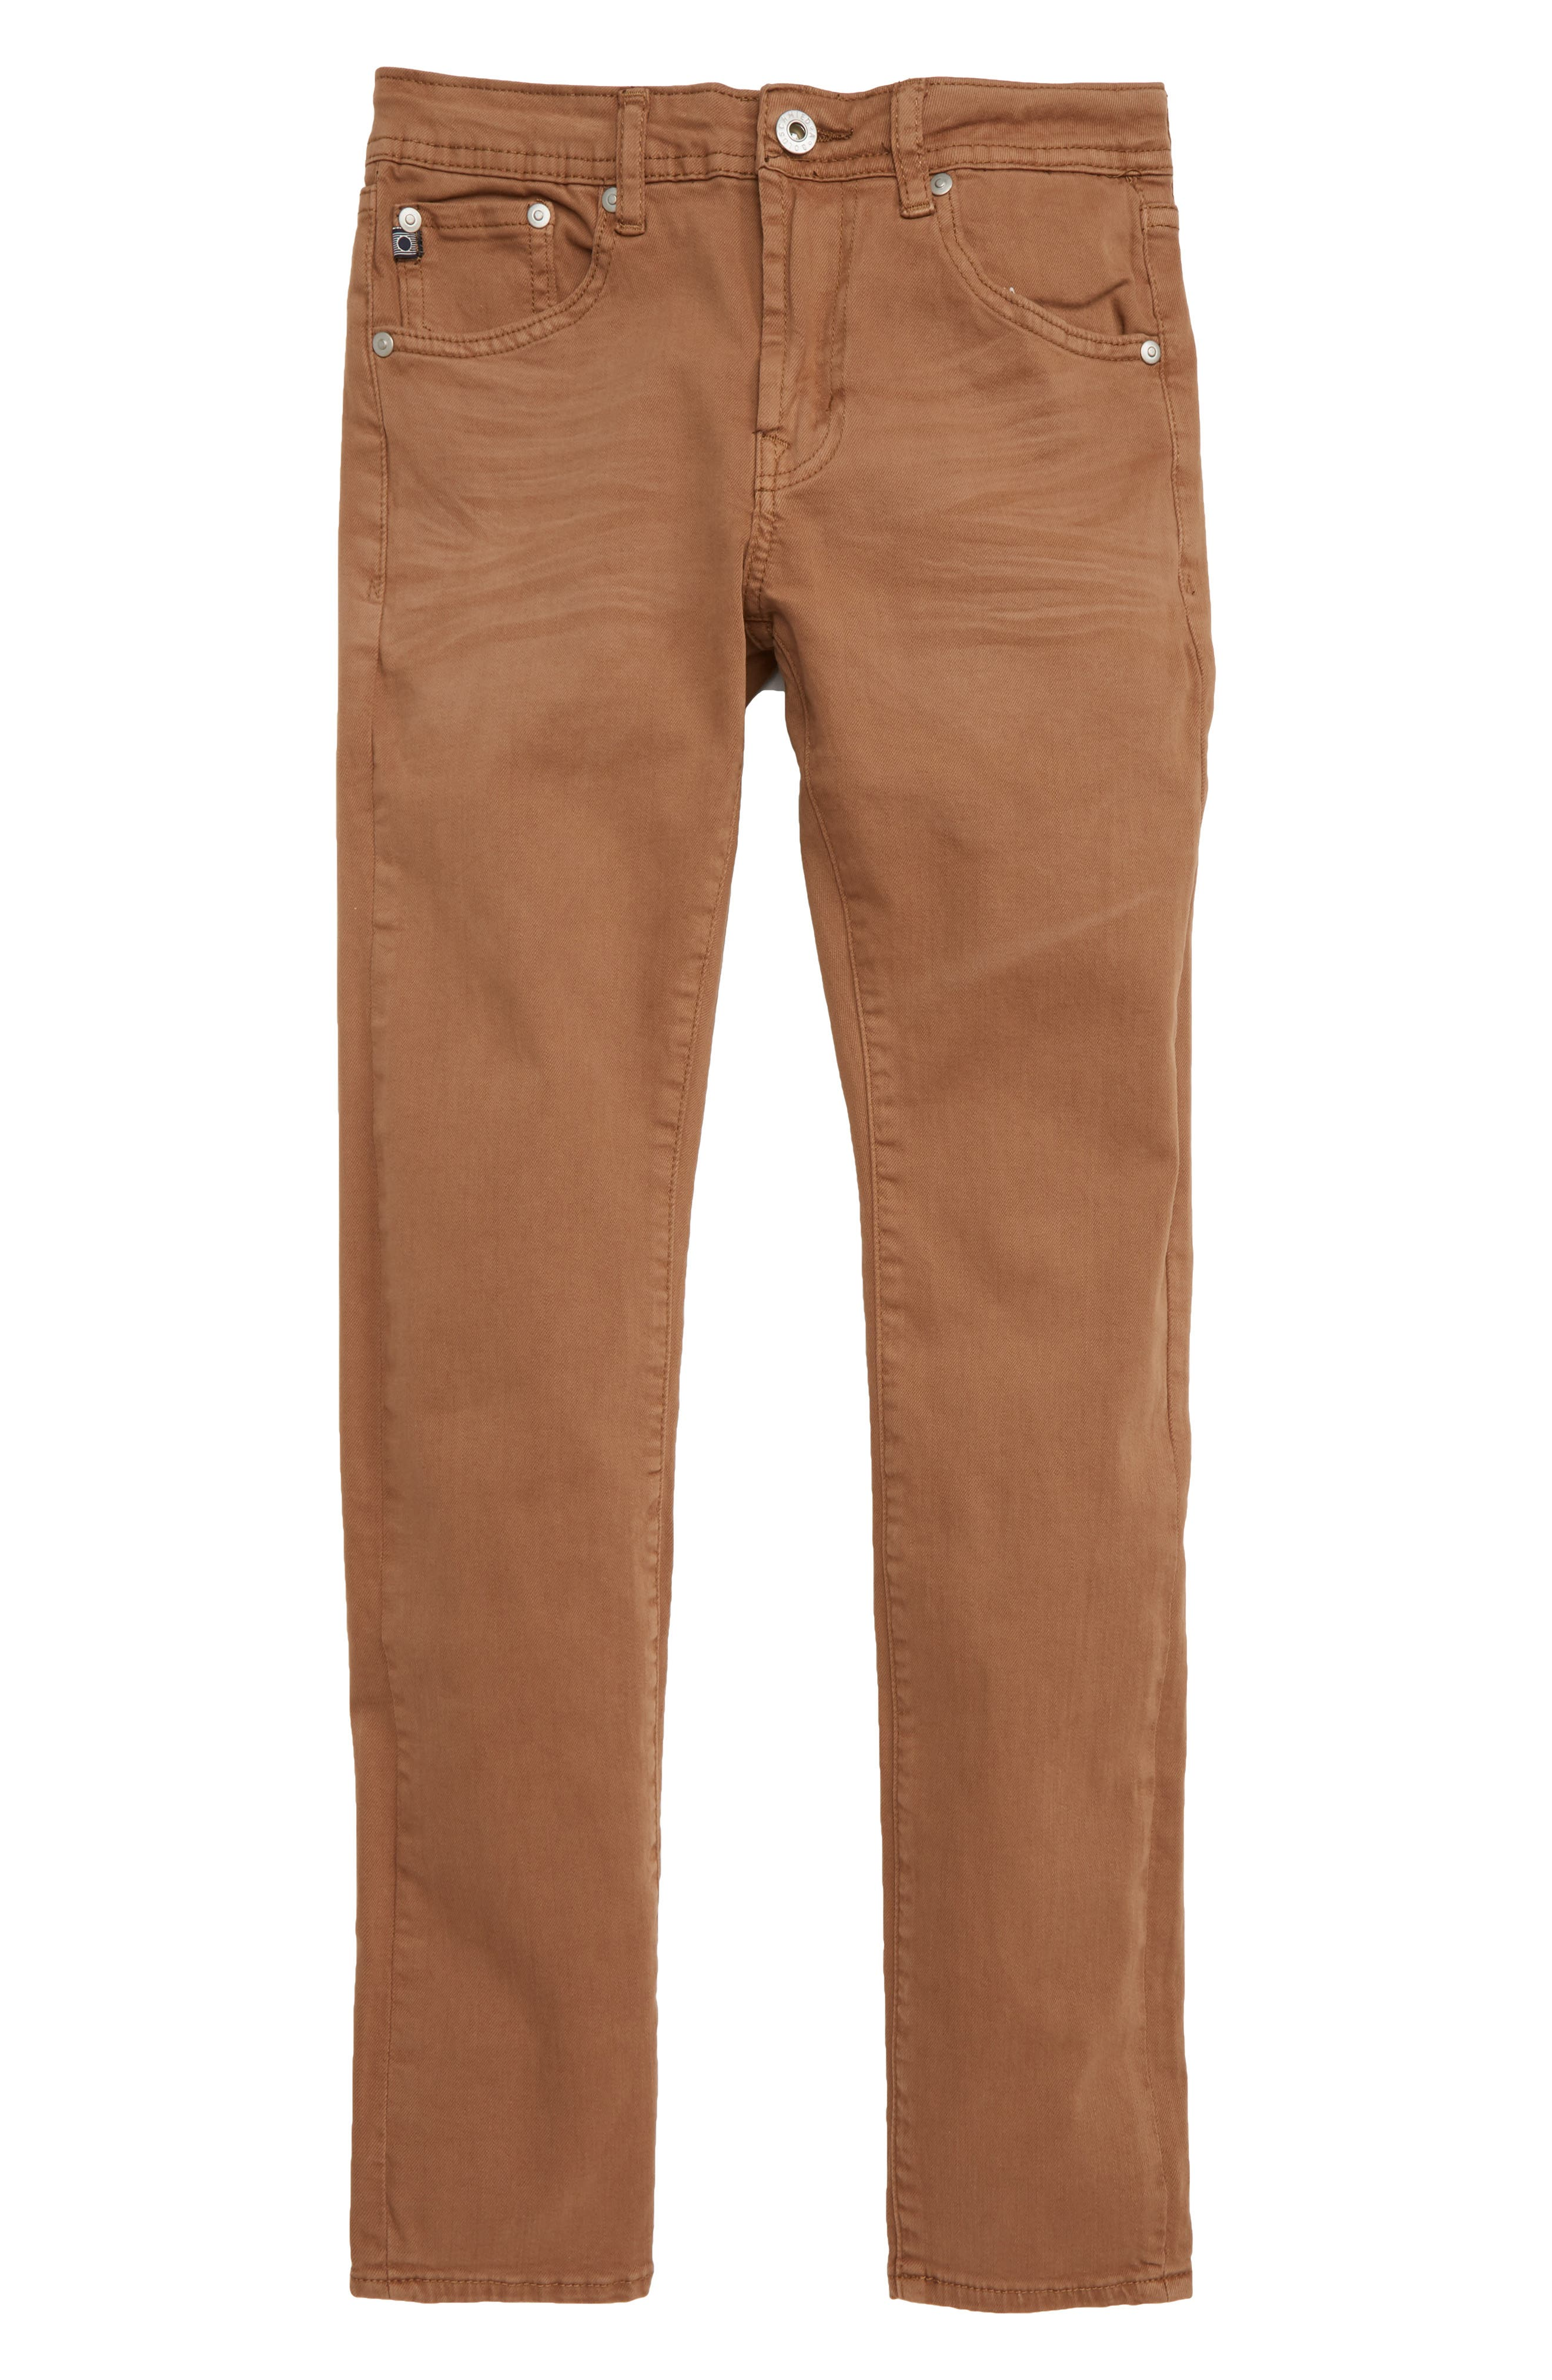 adriano goldschmied kids The Ryker Slim Skinny Jeans,                             Main thumbnail 1, color,                             MUSTARD GOLDEN OLIVE